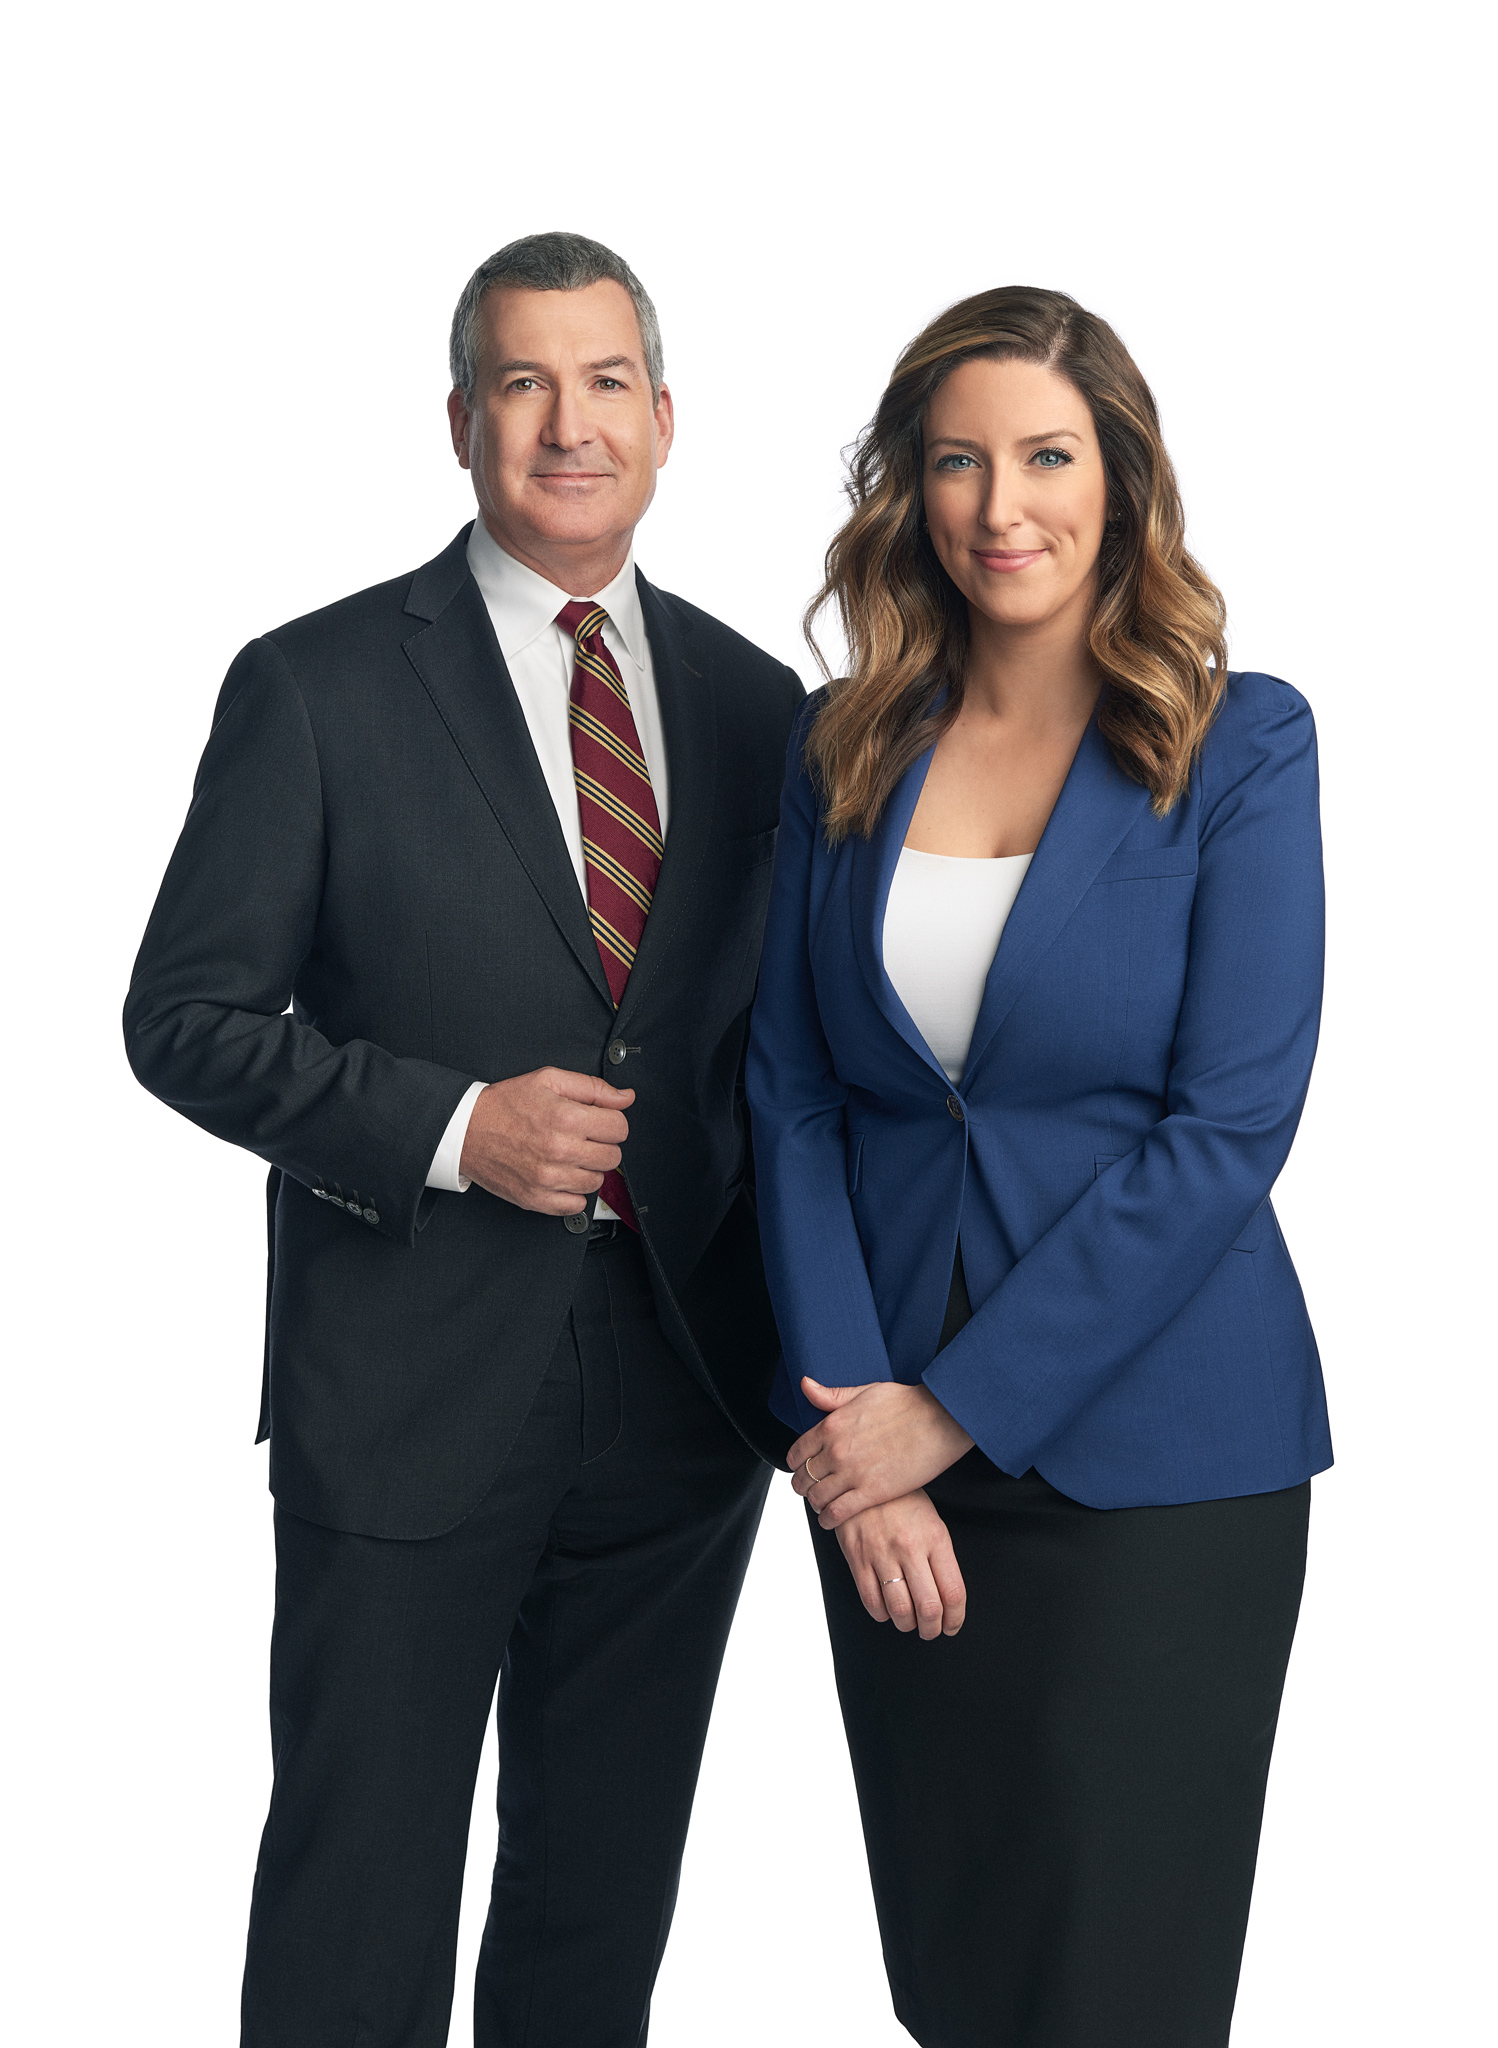 David Akin and Vassy Kapelos | Global News